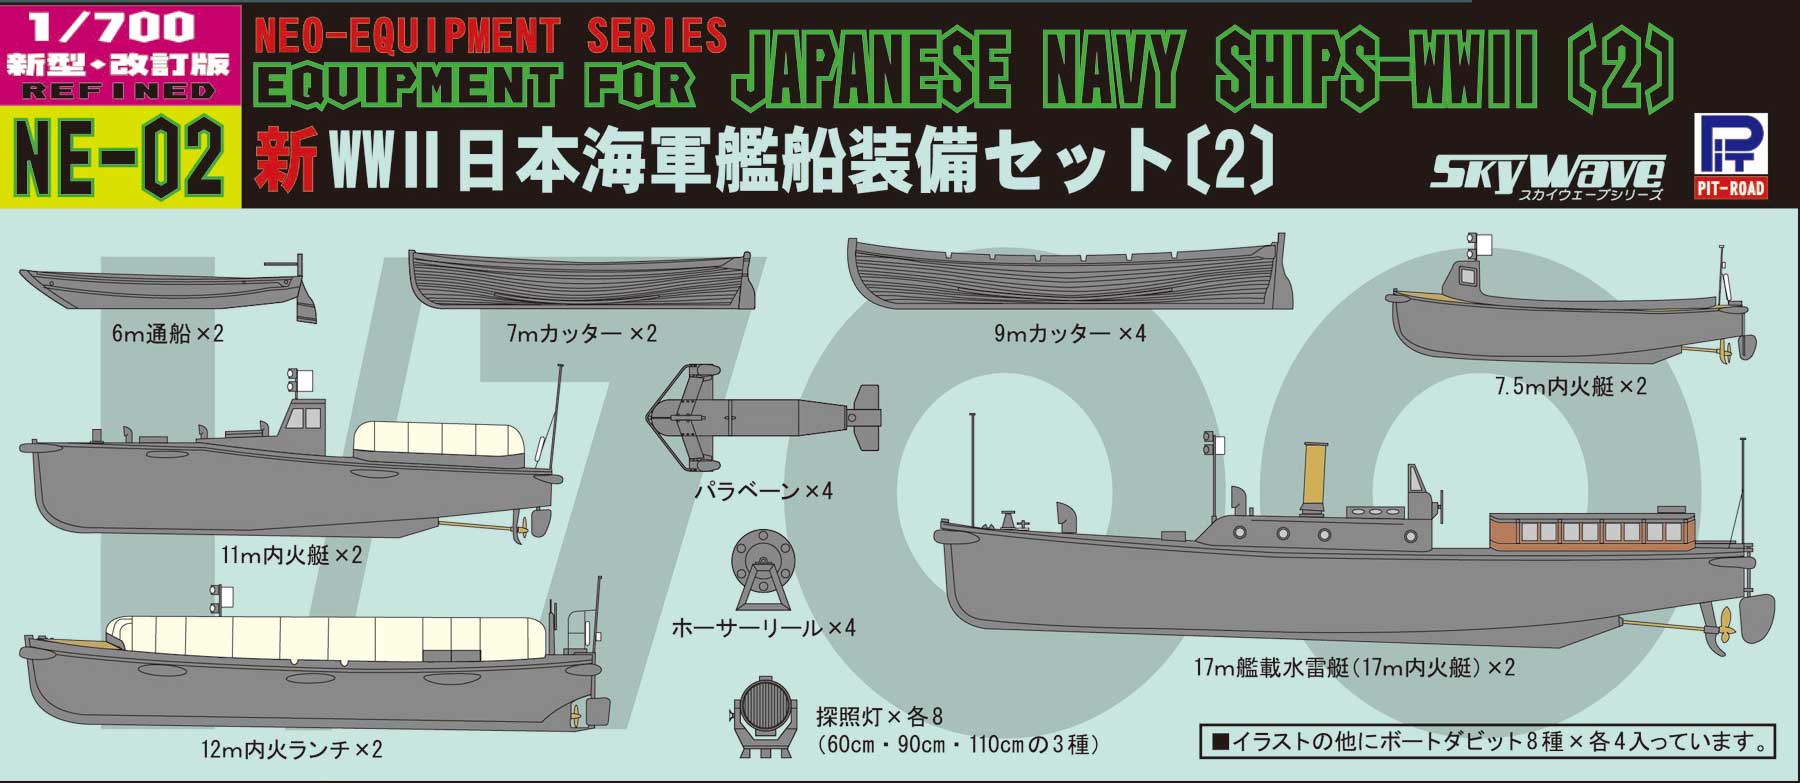 Pit Road 1/700 Refined Neo-Equipment Series Equipment For Japanese Navy Ship-WWII [2]